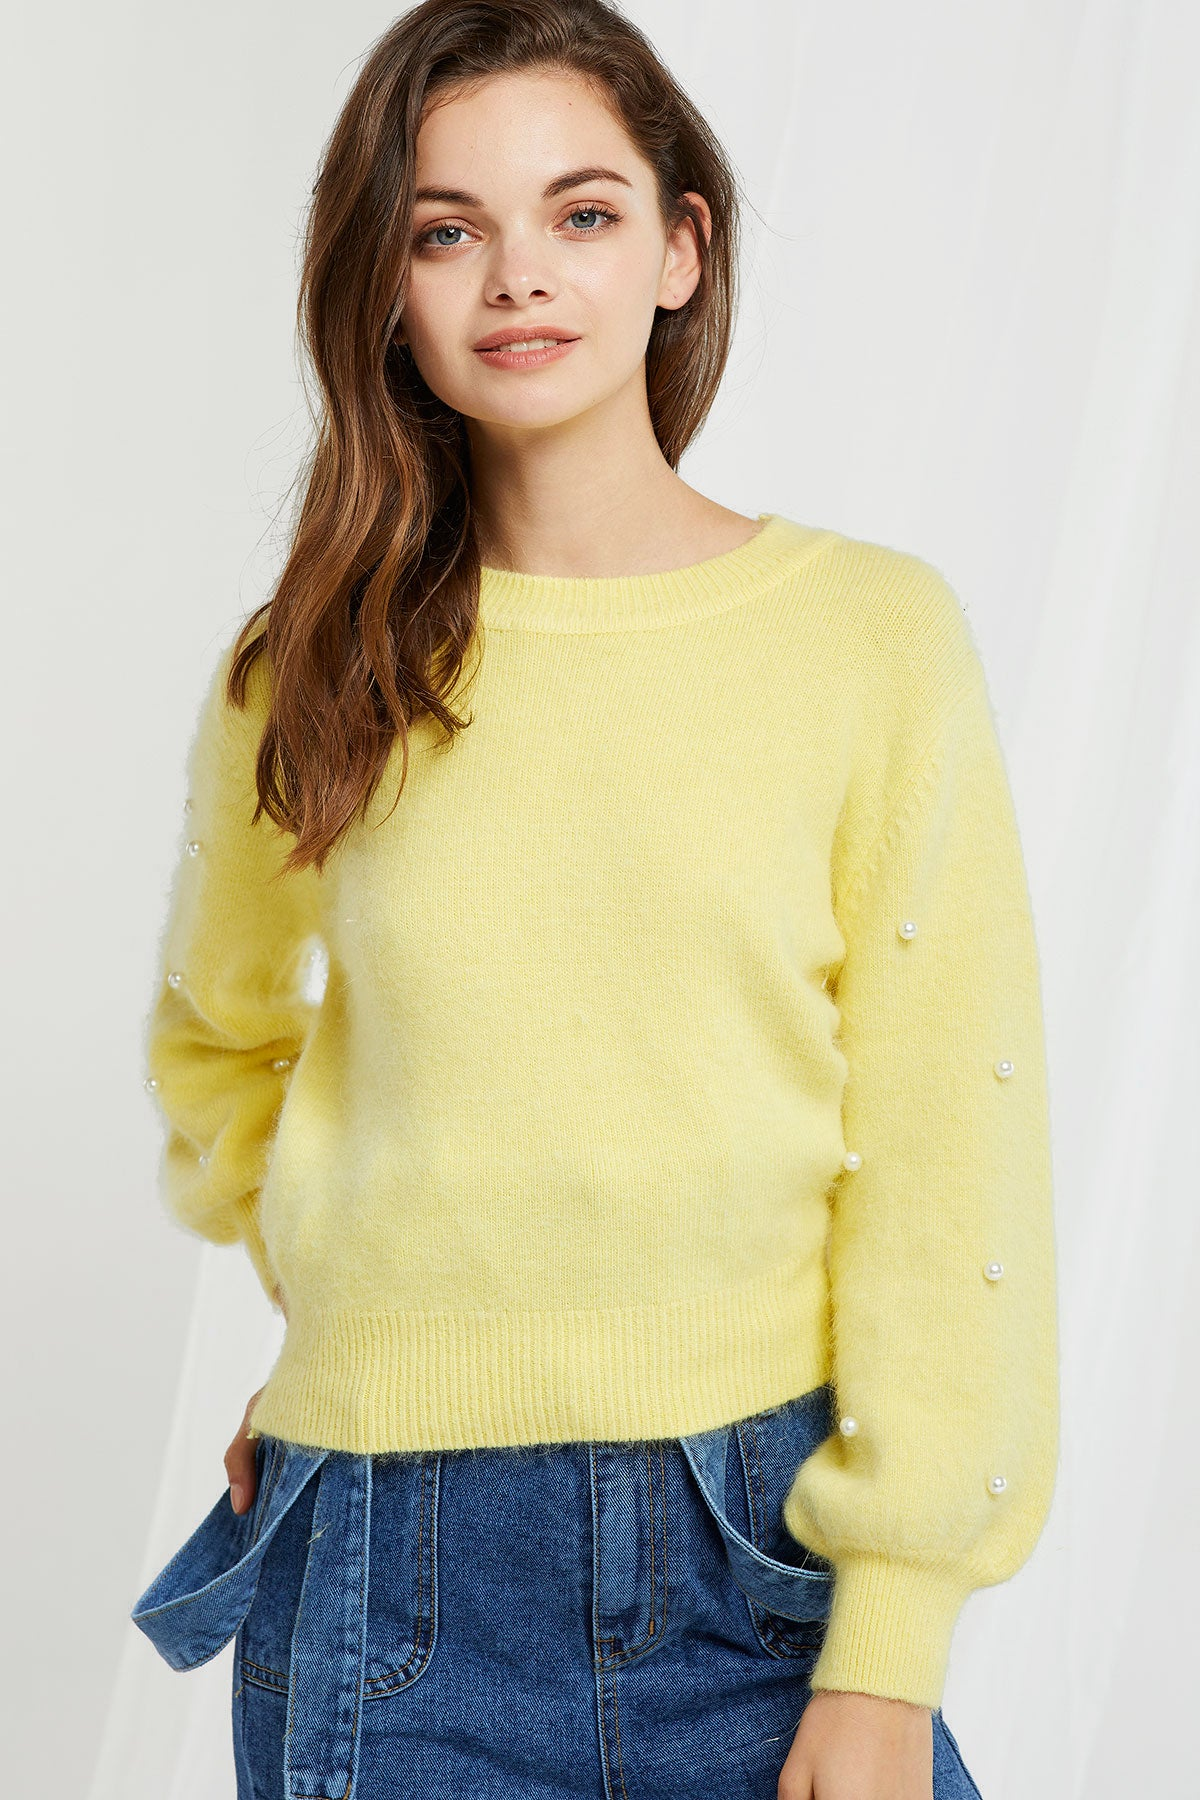 Andrea Pearly Sweater-2 Colors (Pre-Order)